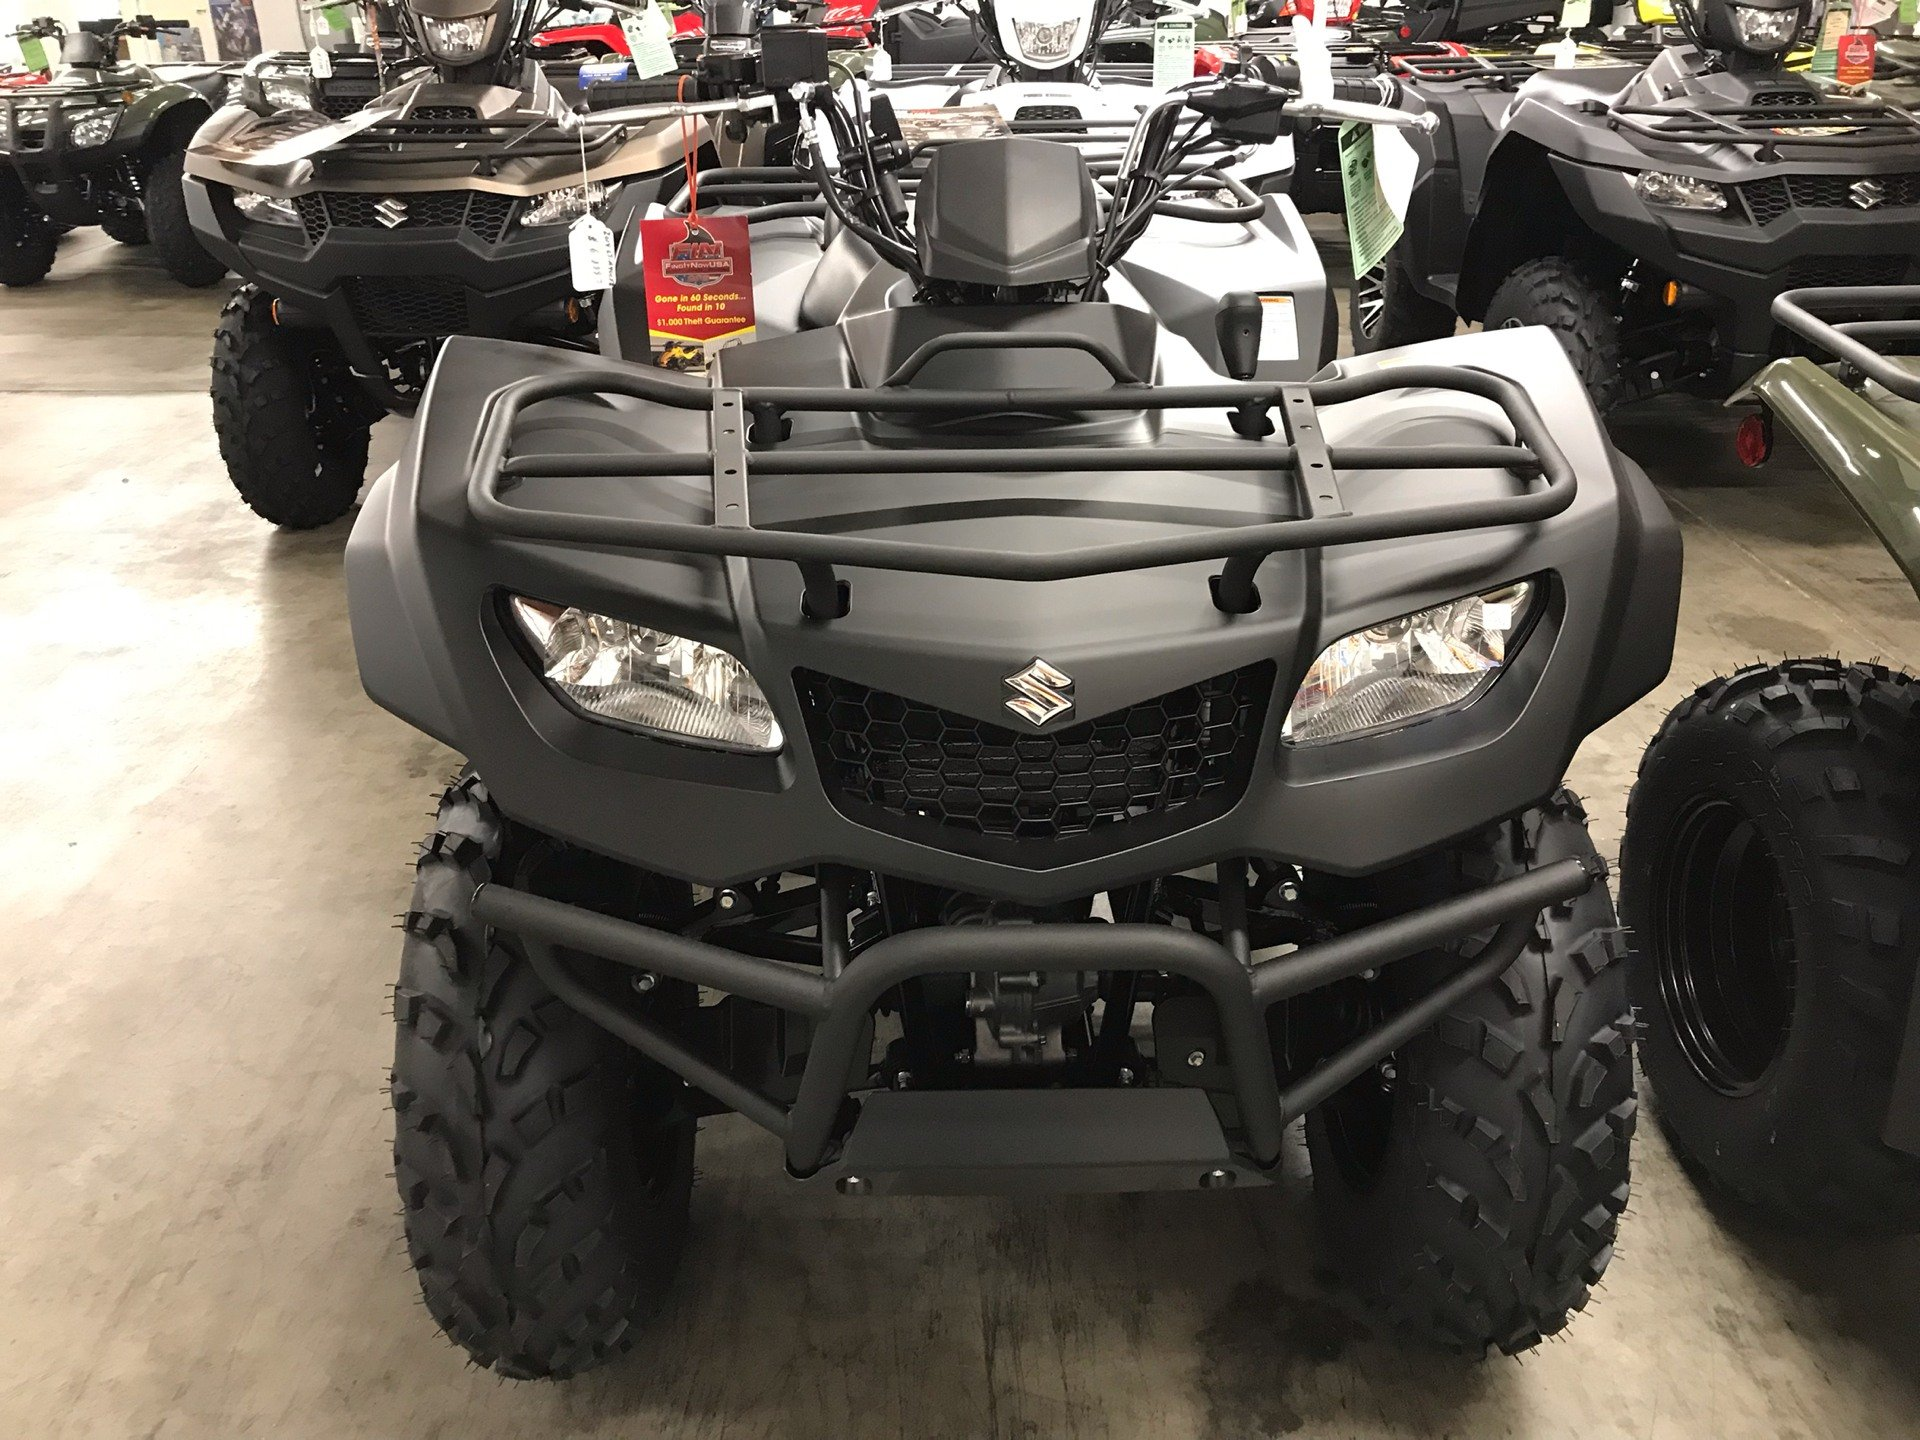 2019 Suzuki KingQuad 400ASi+ in Sanford, North Carolina - Photo 5